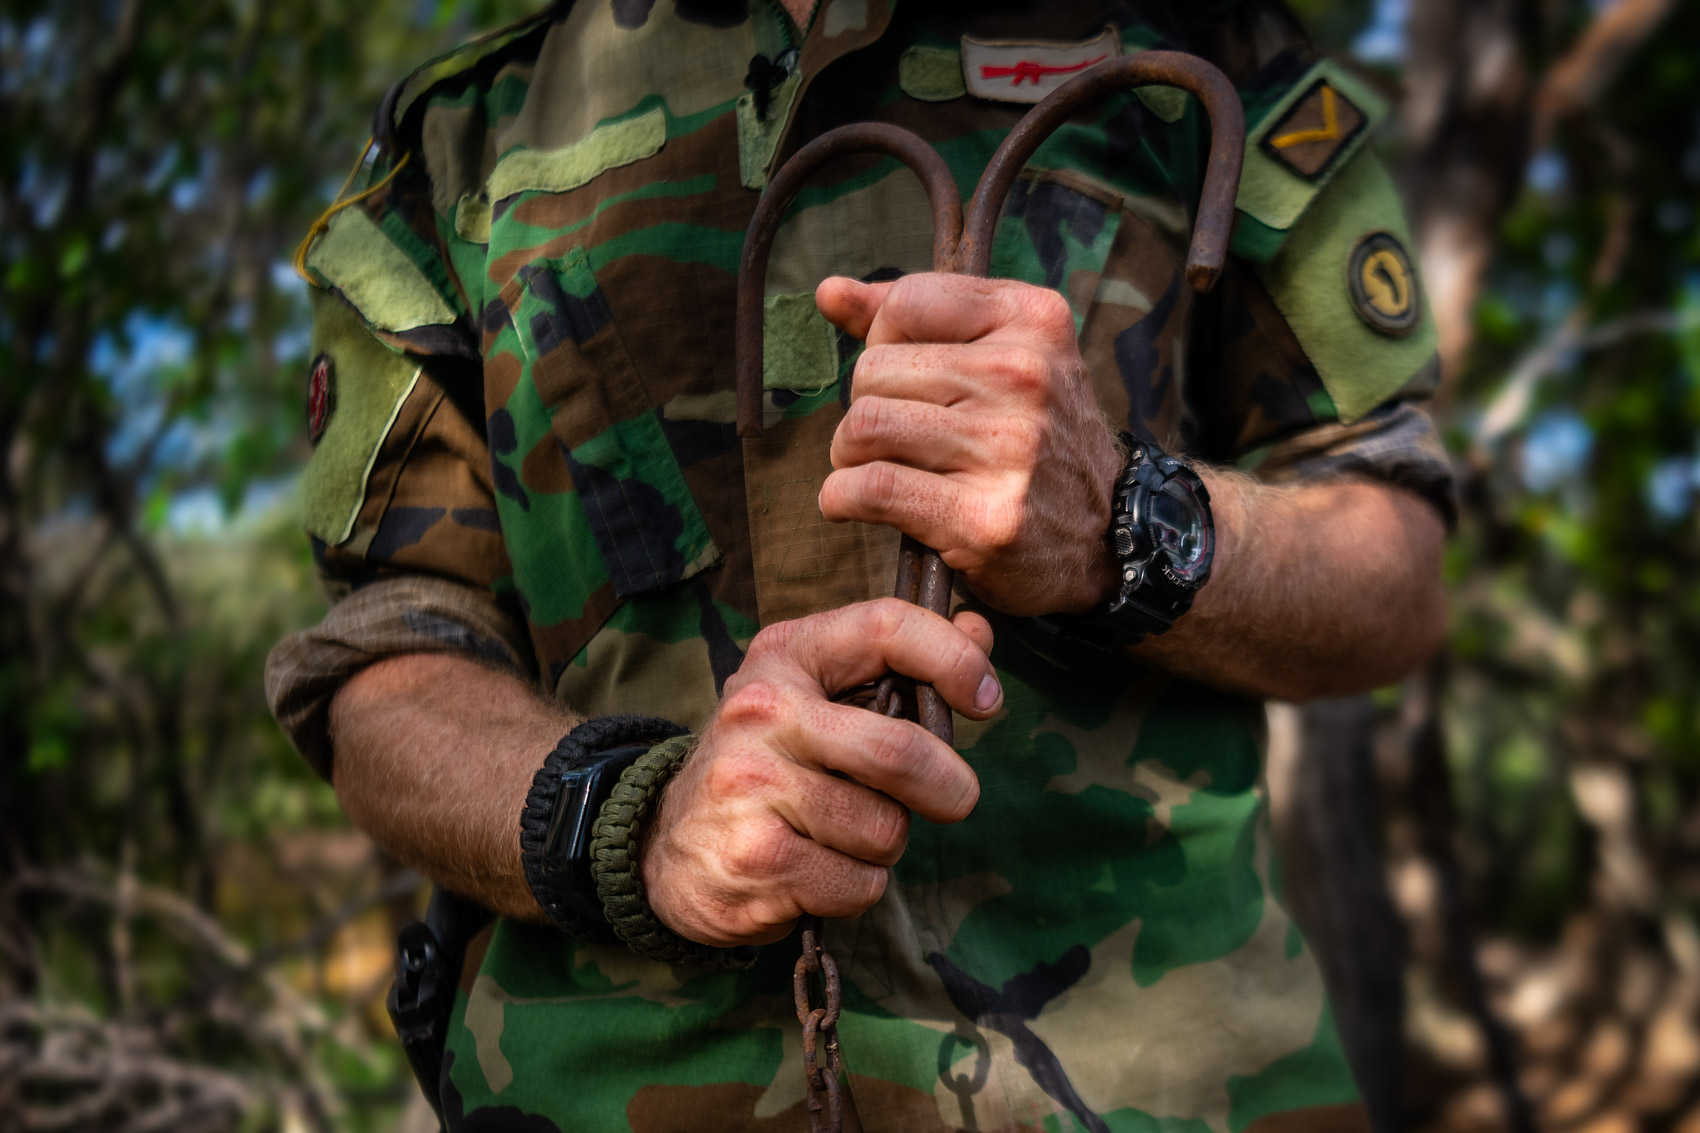 Protrack Anti-Poaching Unit ranger holding a rhino snare in hands © David Coulson conservation photojournalist